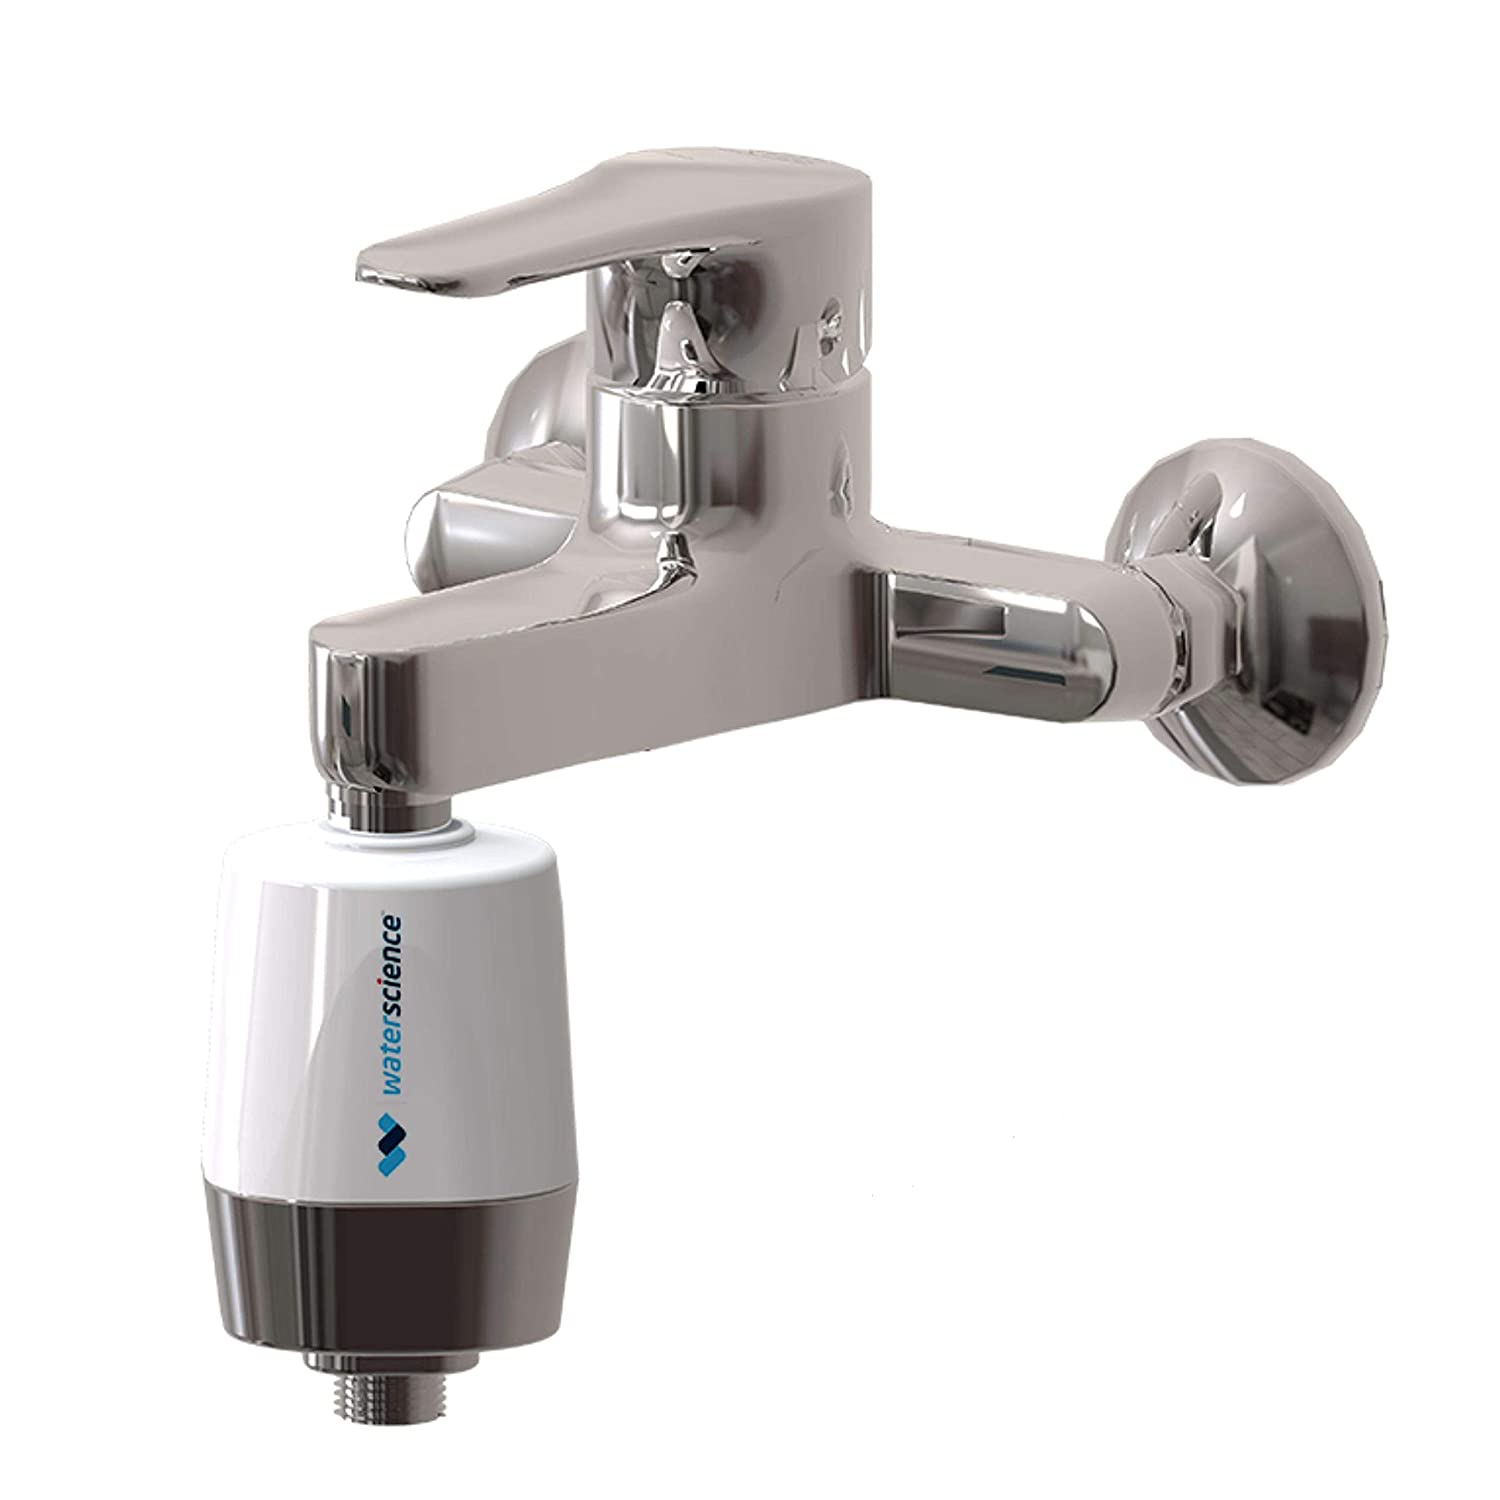 The WaterScience CLEO Shower & Tap Filter